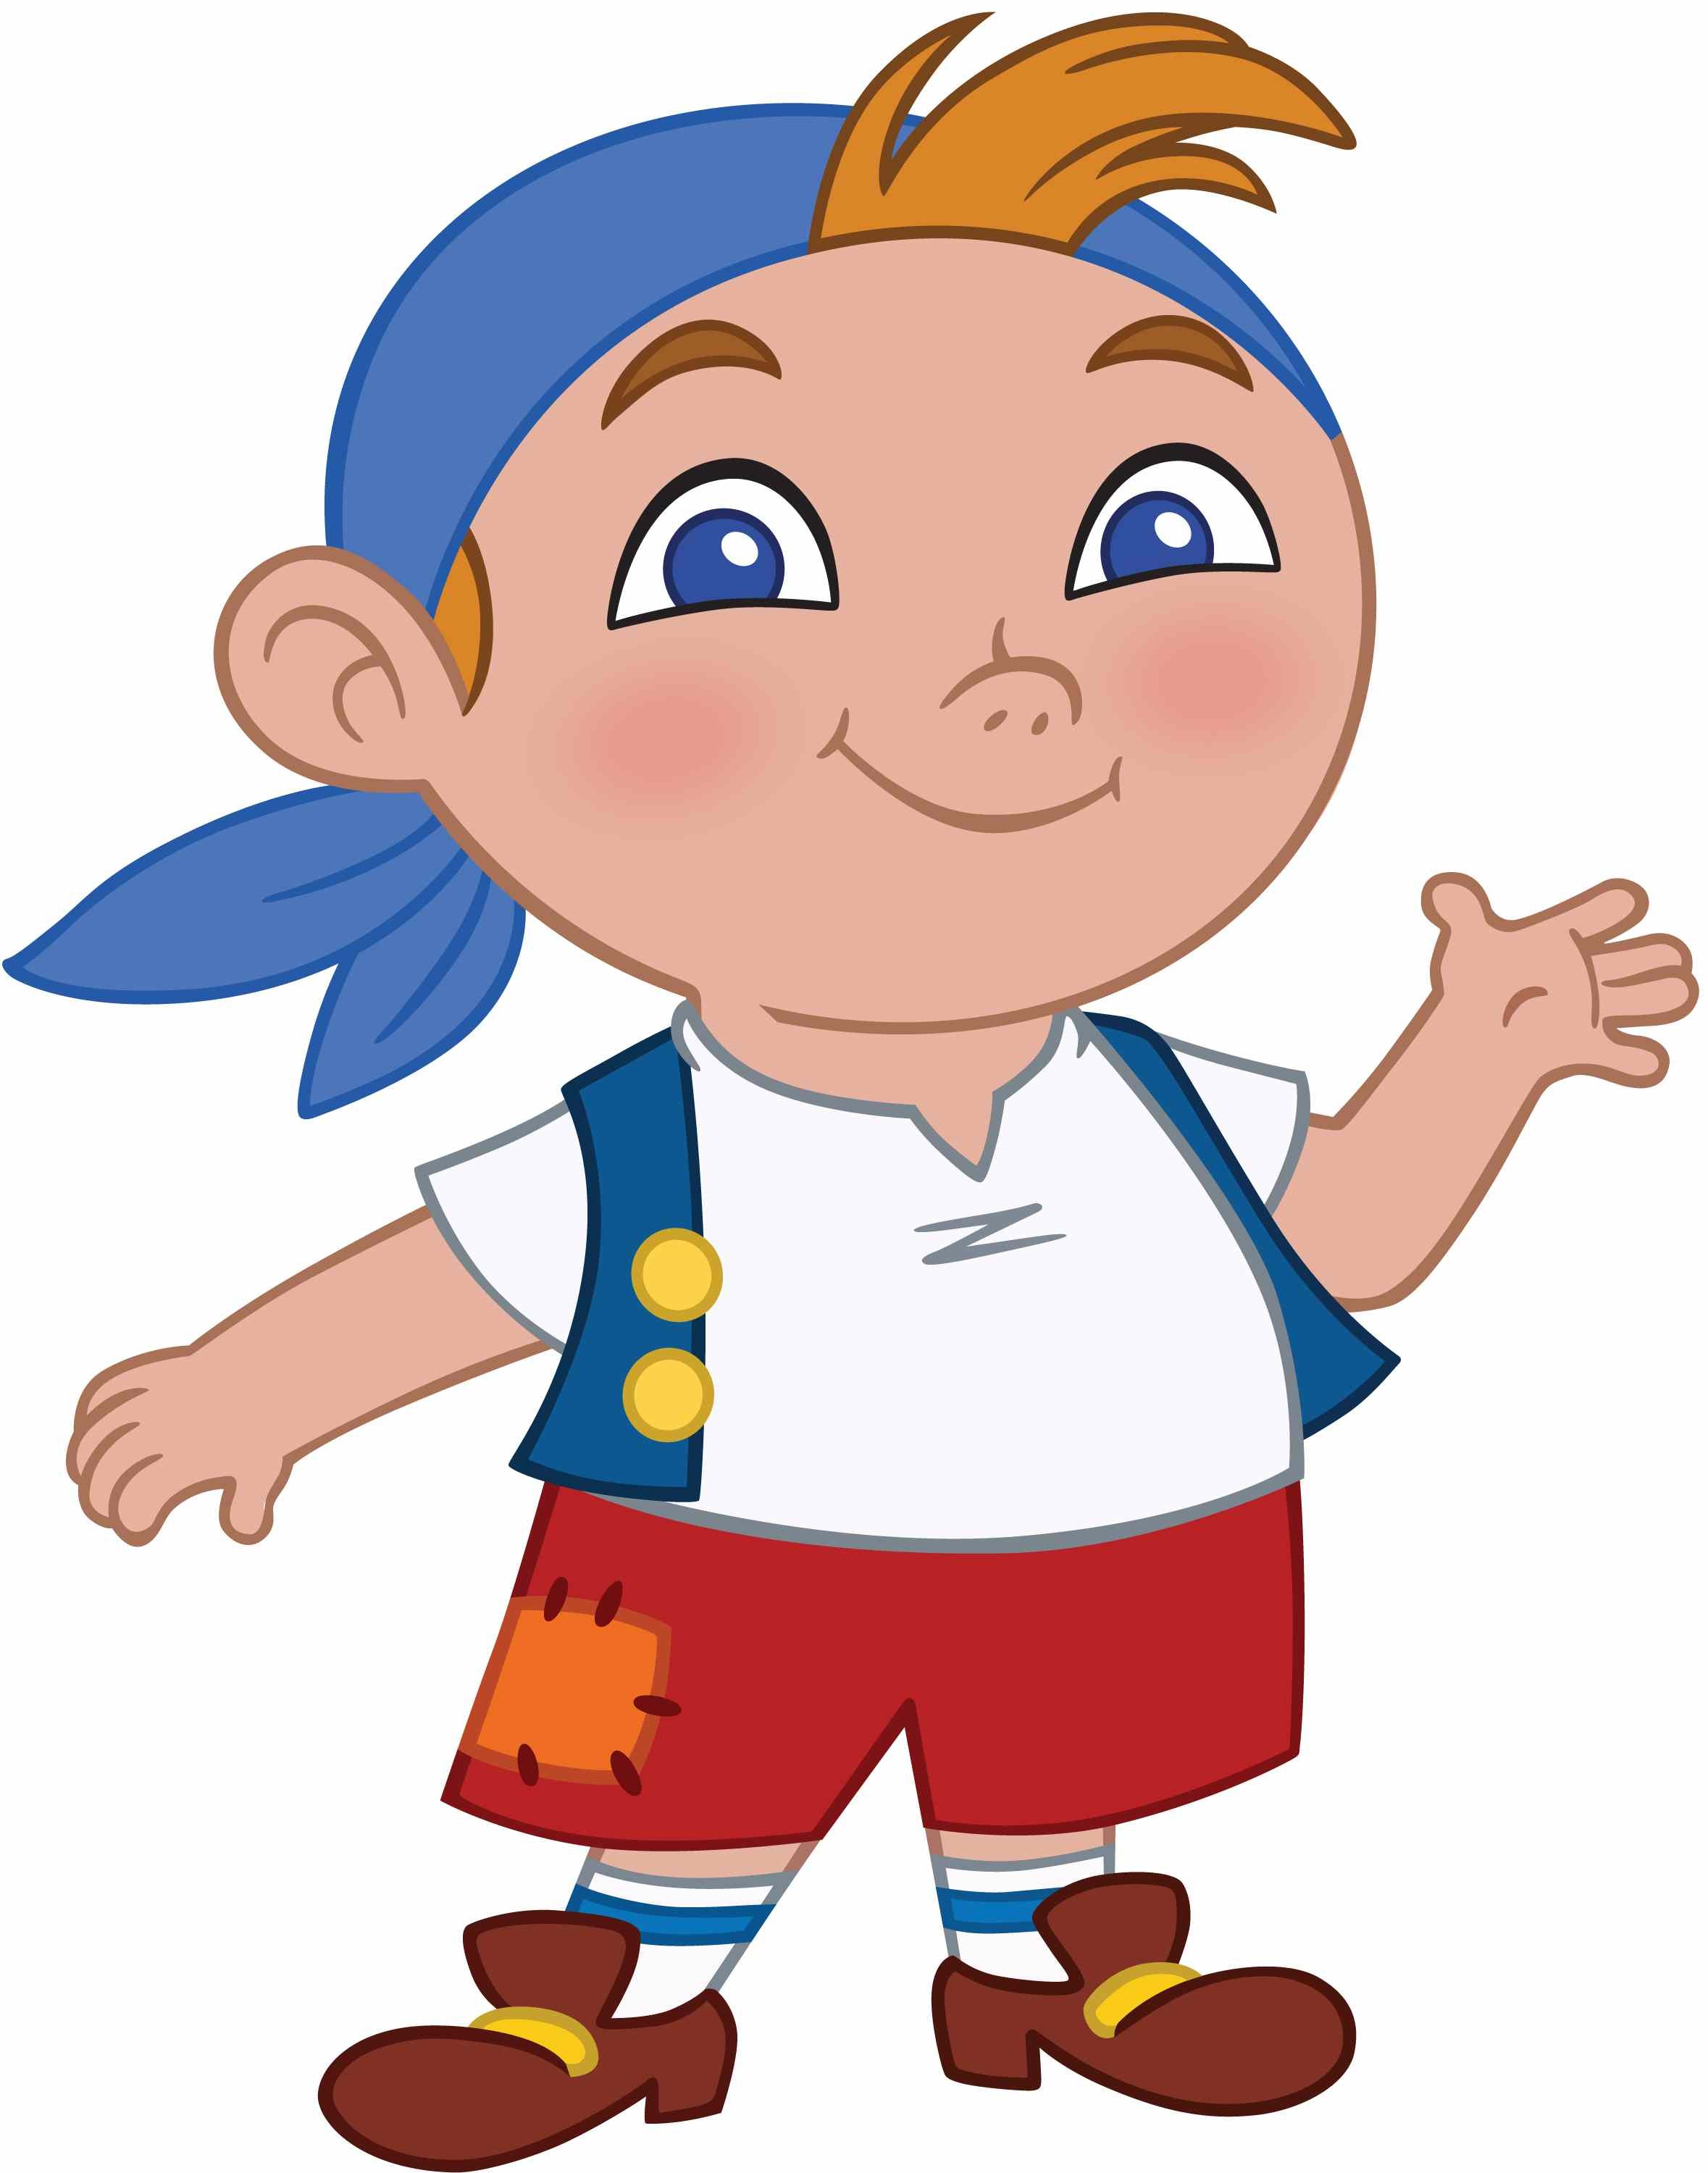 Cubby from Jake and the Never Land Pirates